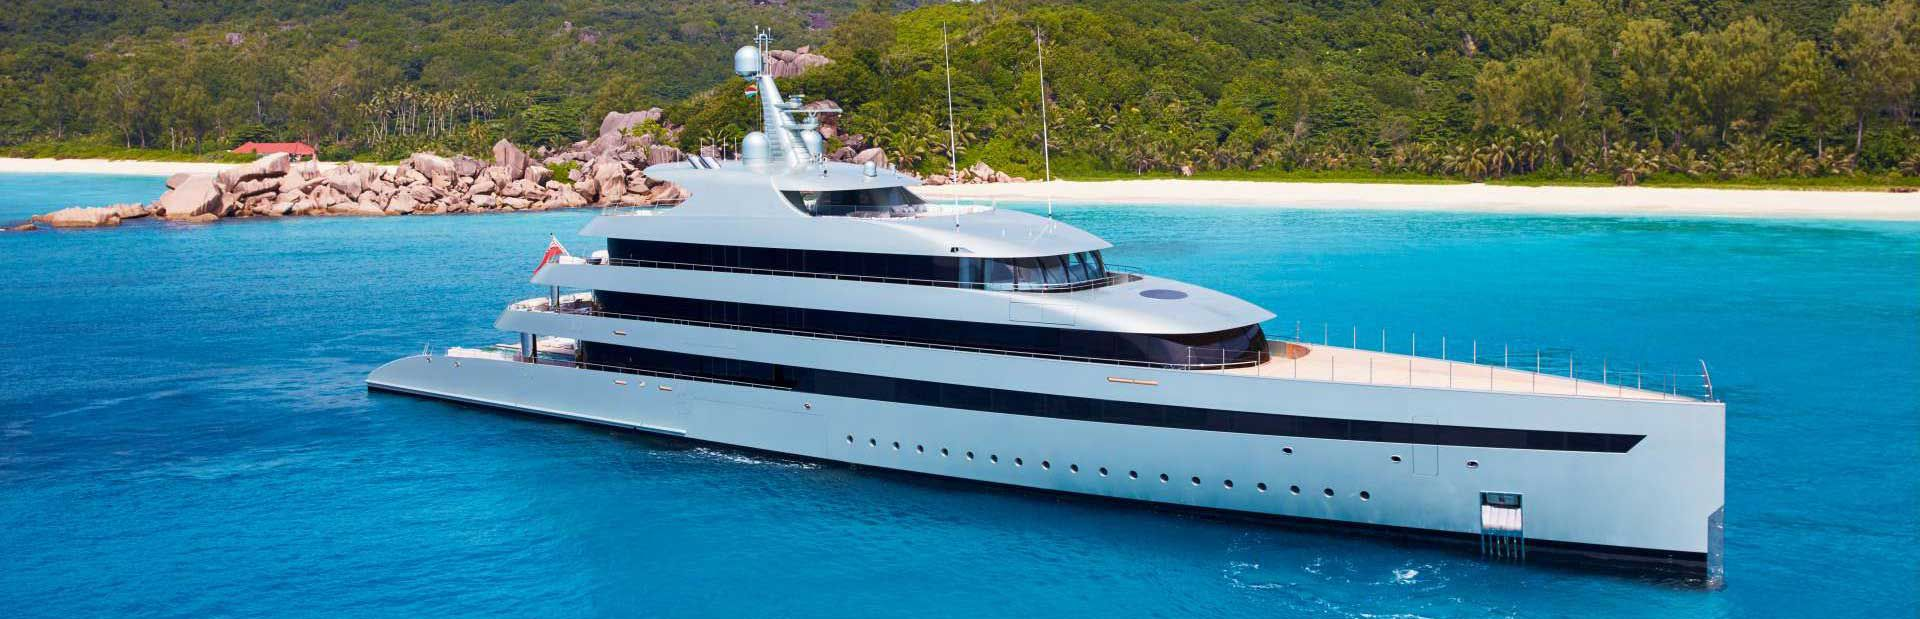 Superyacht Savannah at the beach